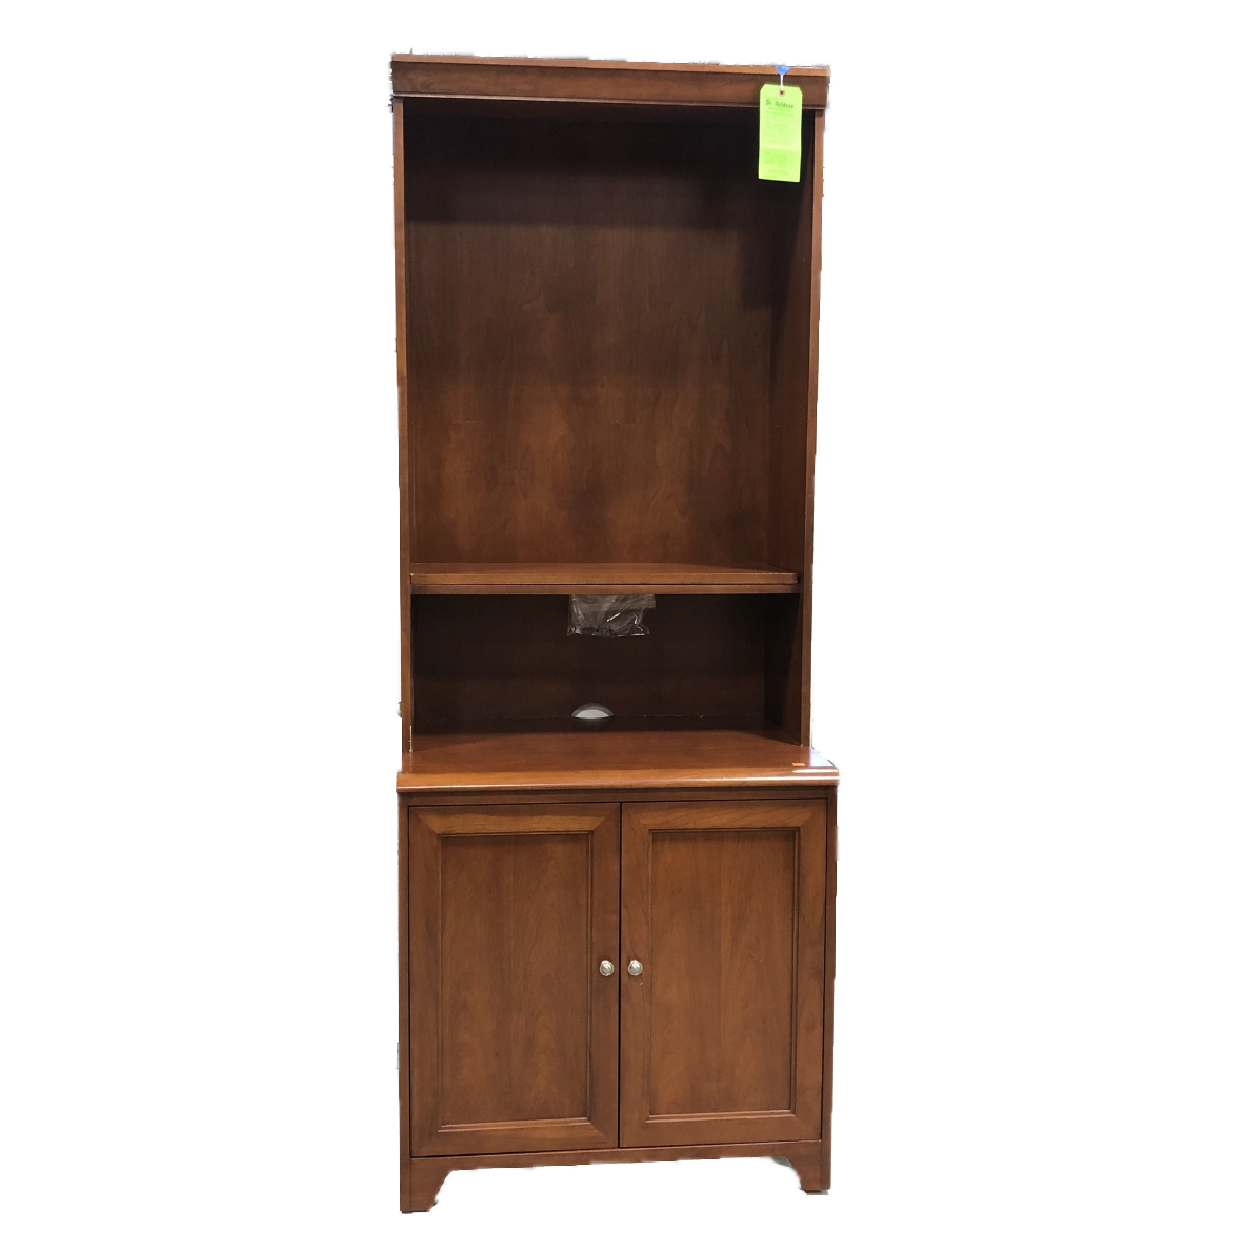 Ethan Allen Cabinet with Shelf